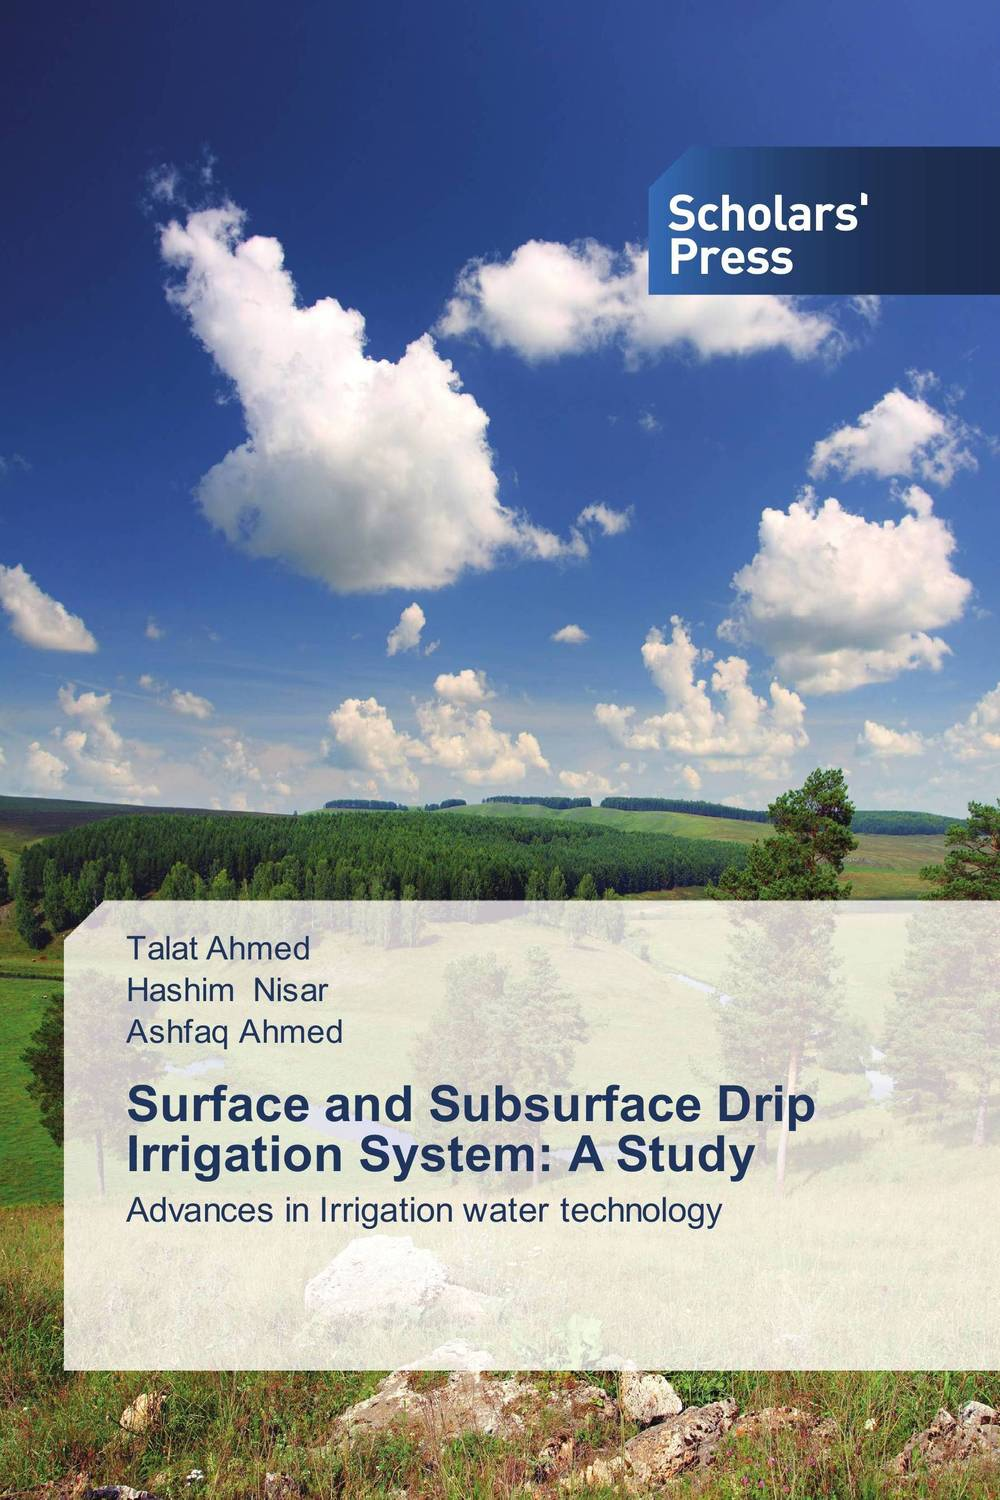 Surface and Subsurface Drip Irrigation System: A Study forestry trees under irrigation with sewage effluent